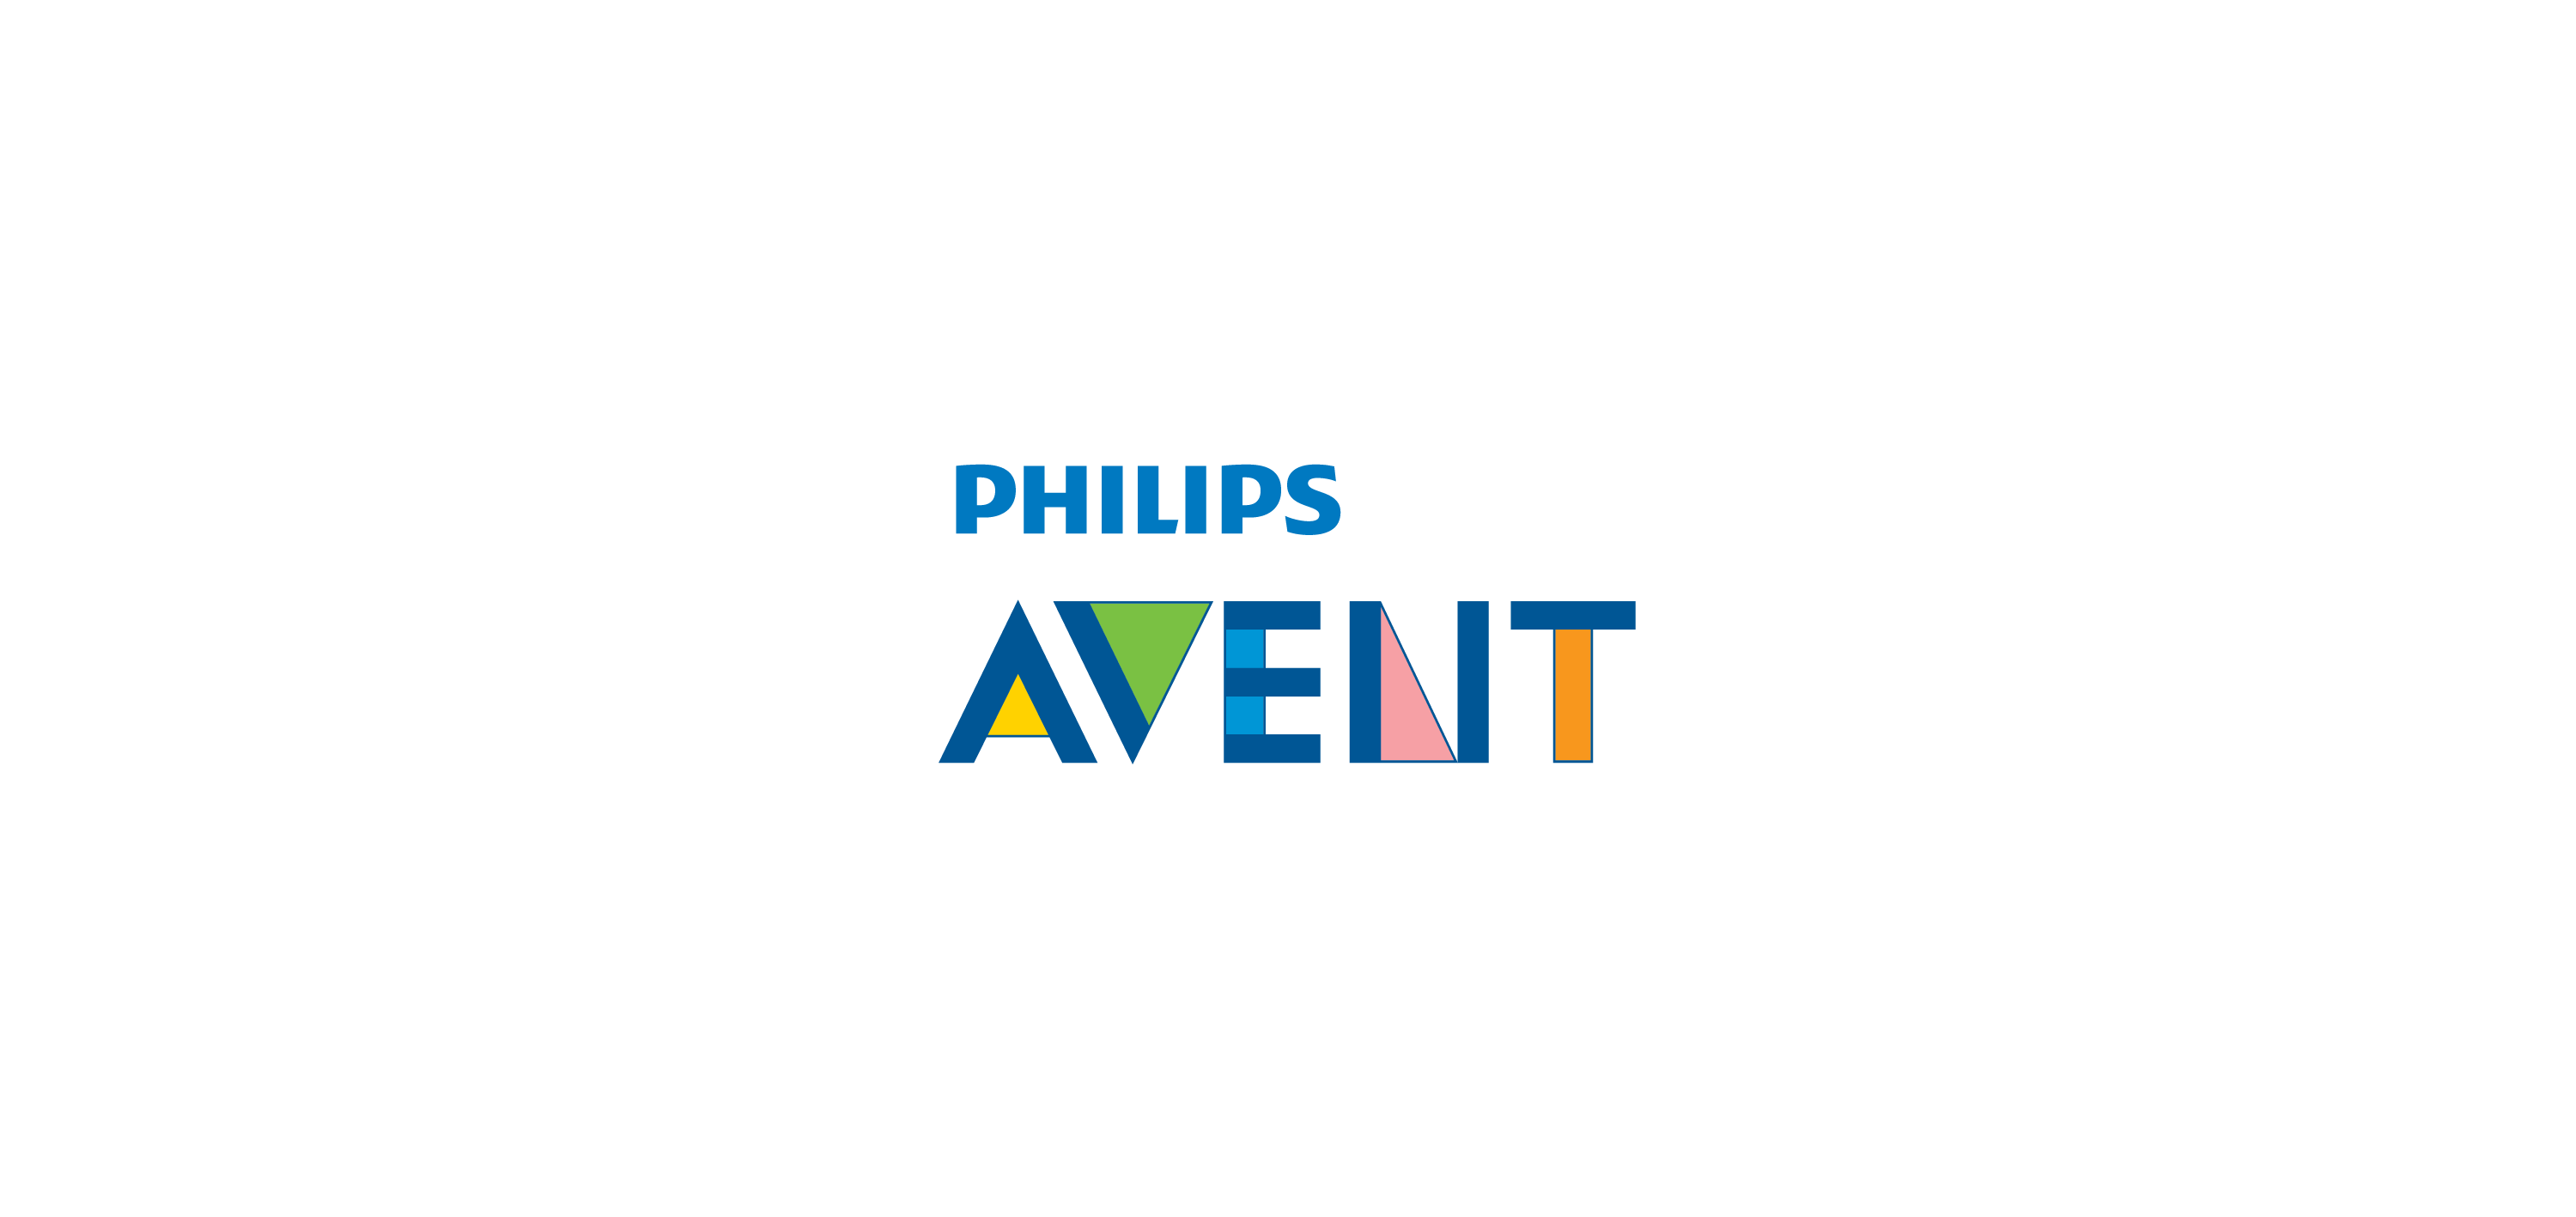 philips avent logo vector